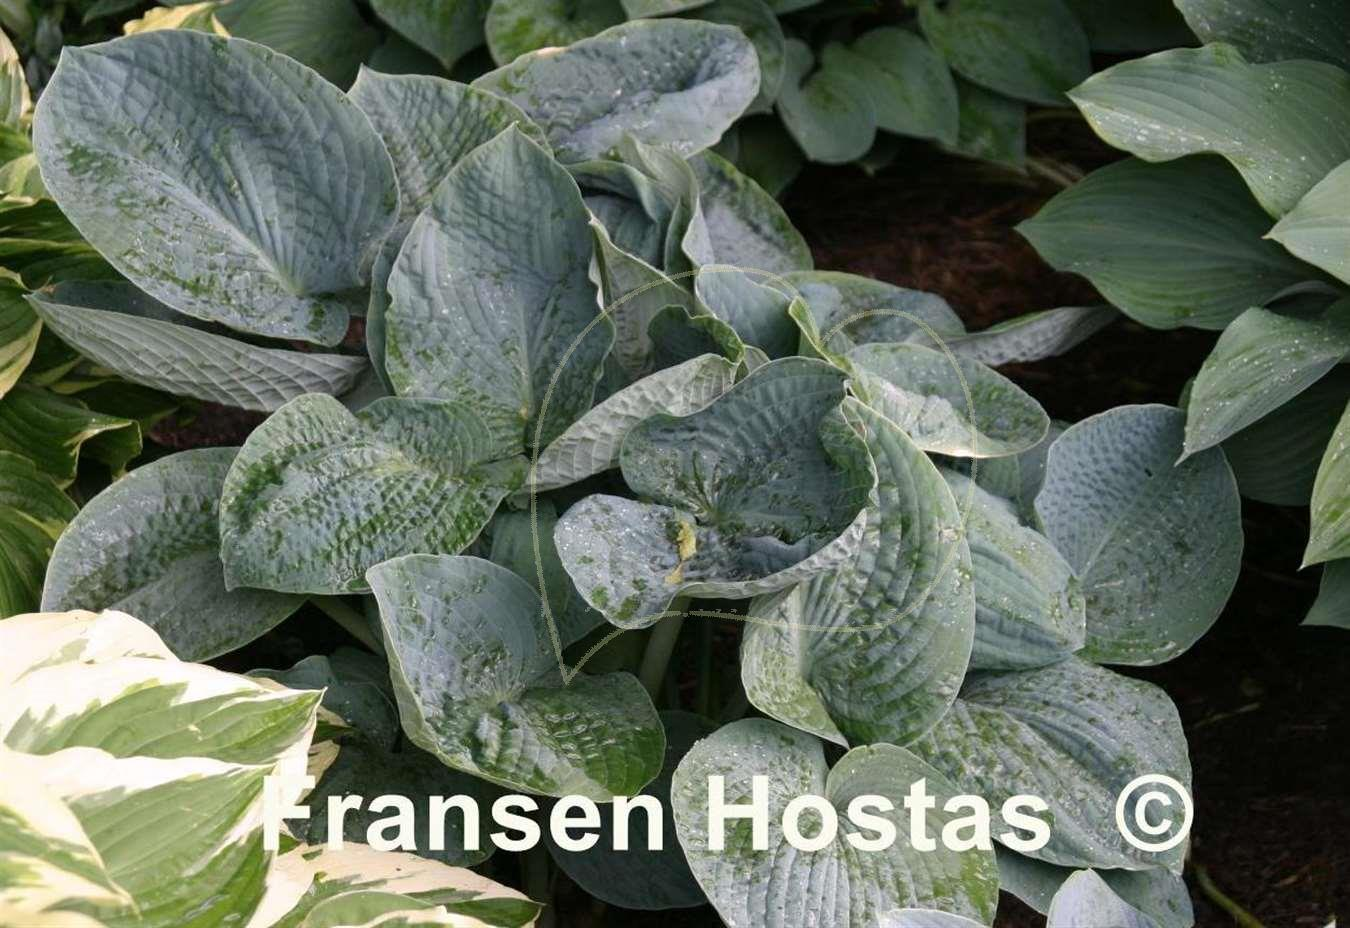 hosta big daddy funkie fransen hostas. Black Bedroom Furniture Sets. Home Design Ideas